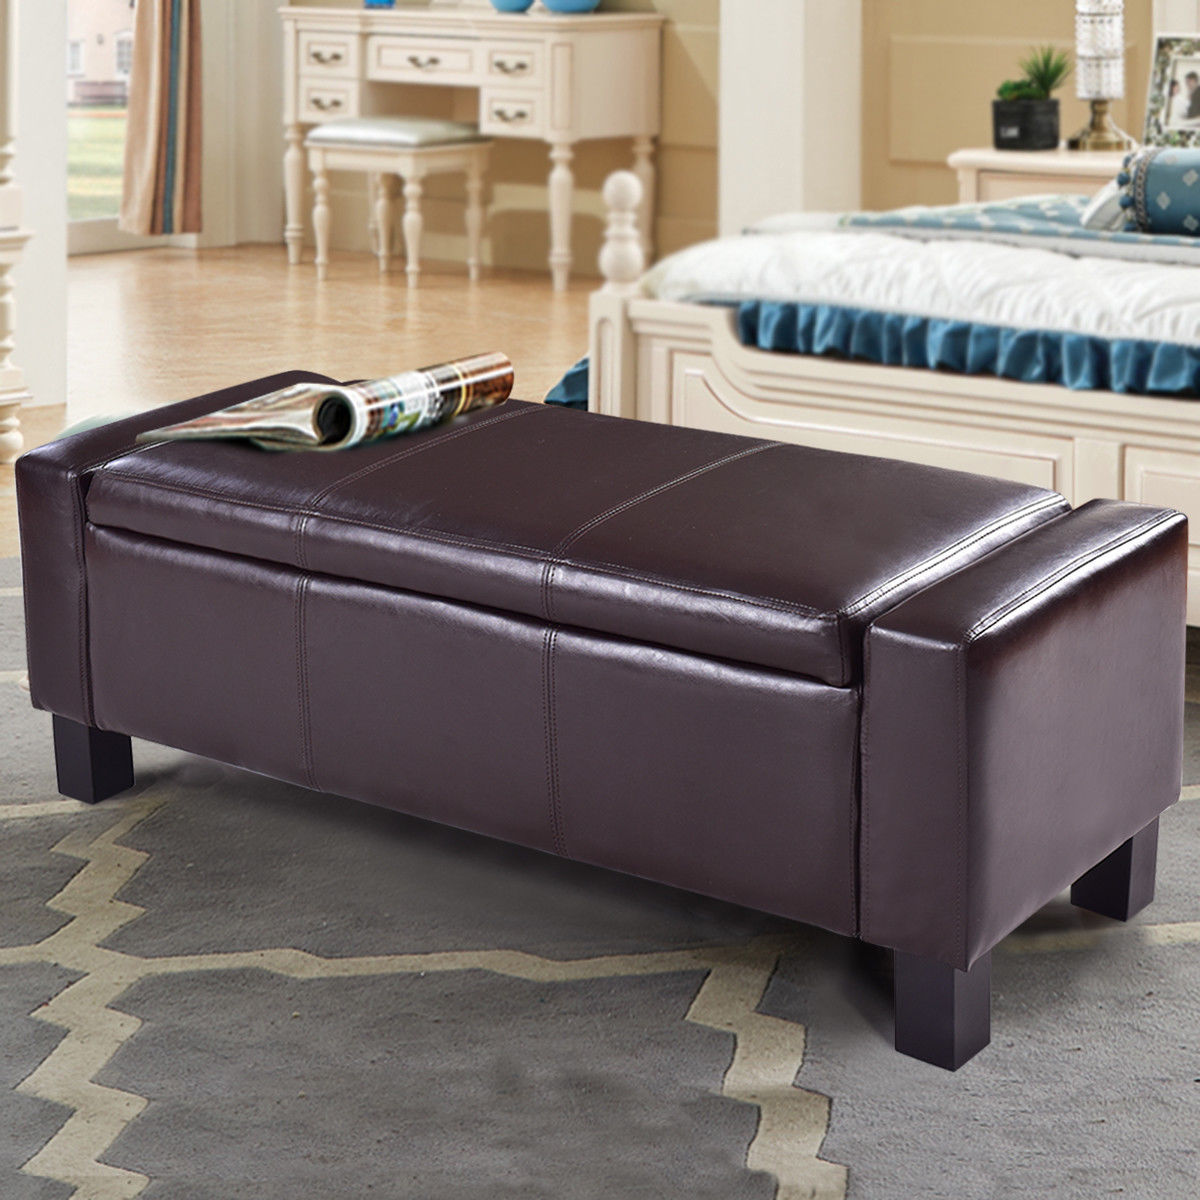 PU Leather Ottoman Bench Storage Chest Footstool Organizer Chair Furniture Brown